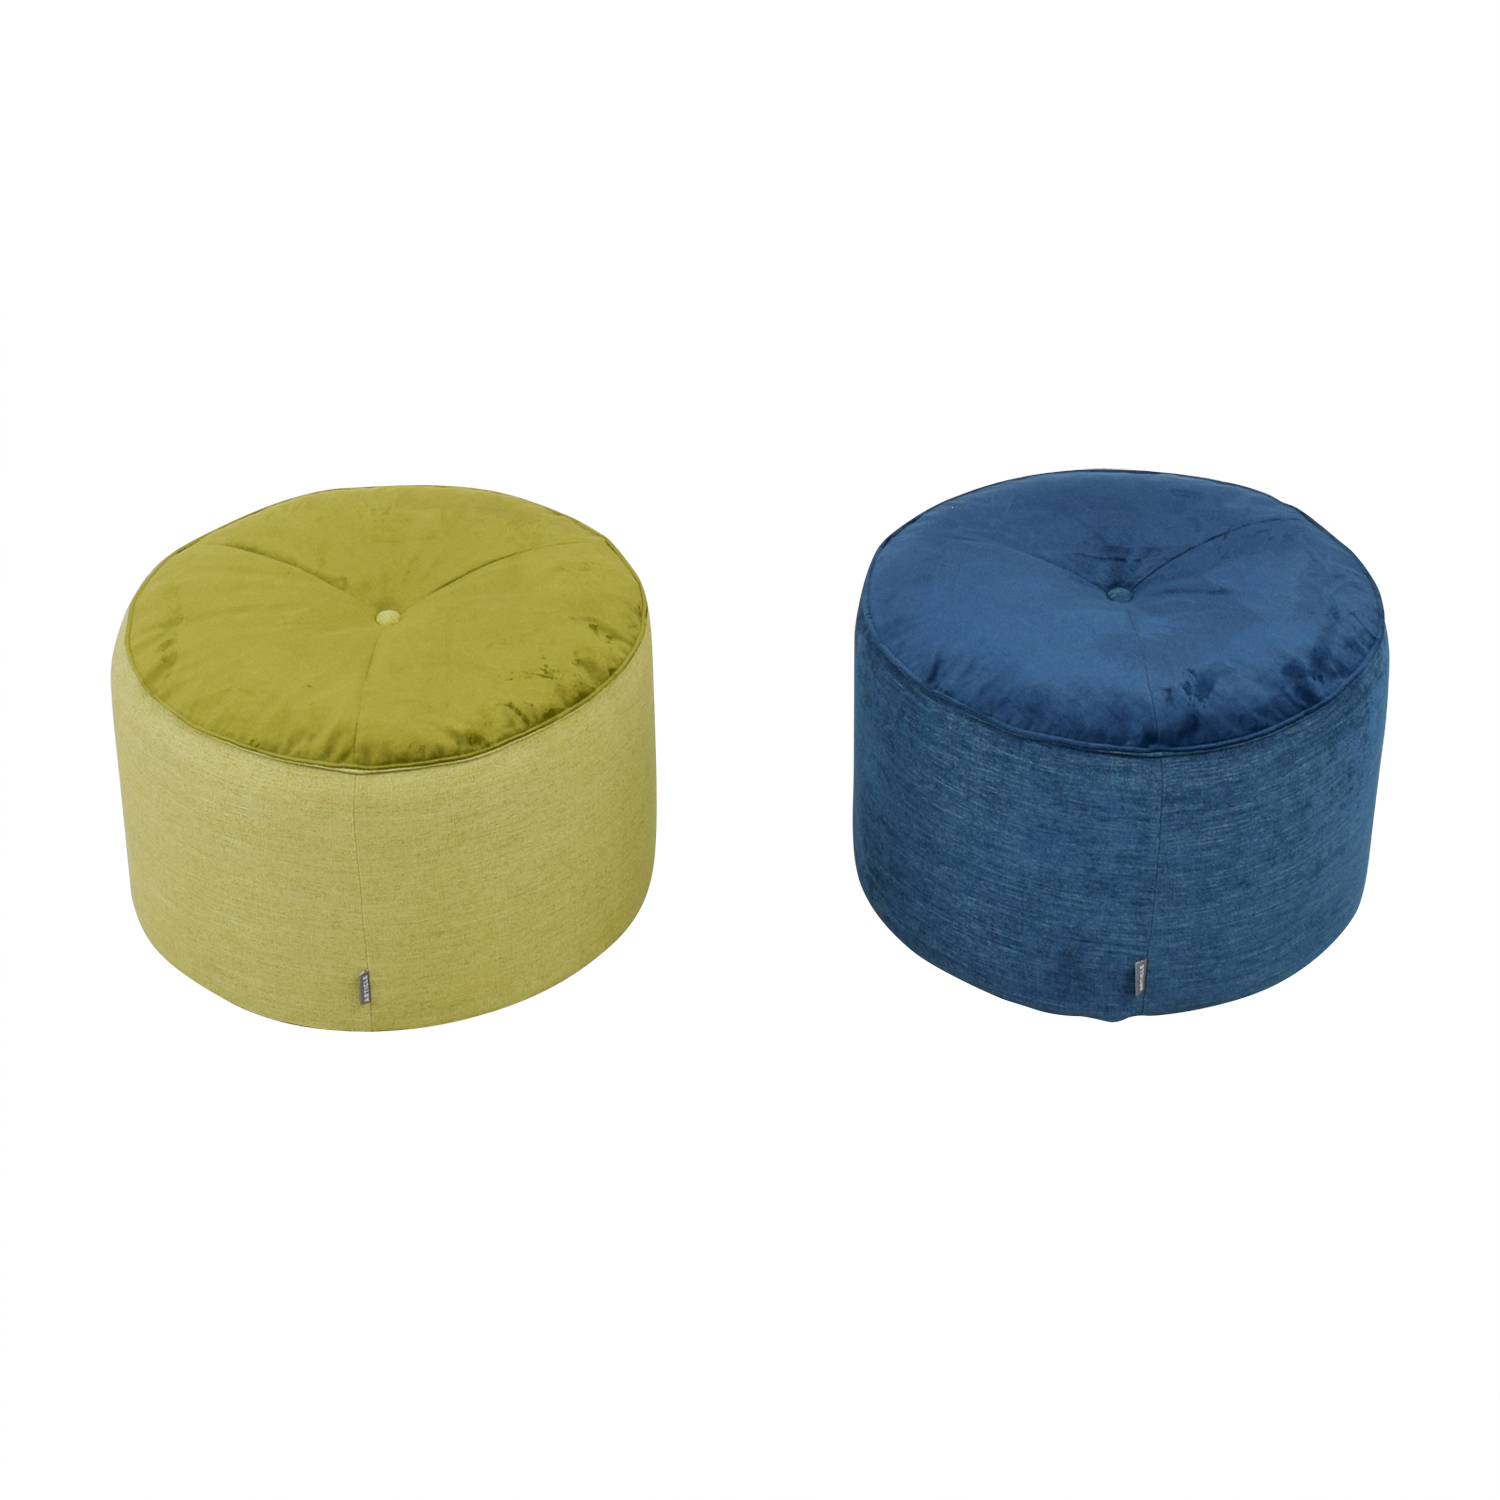 buy Article Article Green and Blue Velvet and Tweed Round Pouf Ottomans online